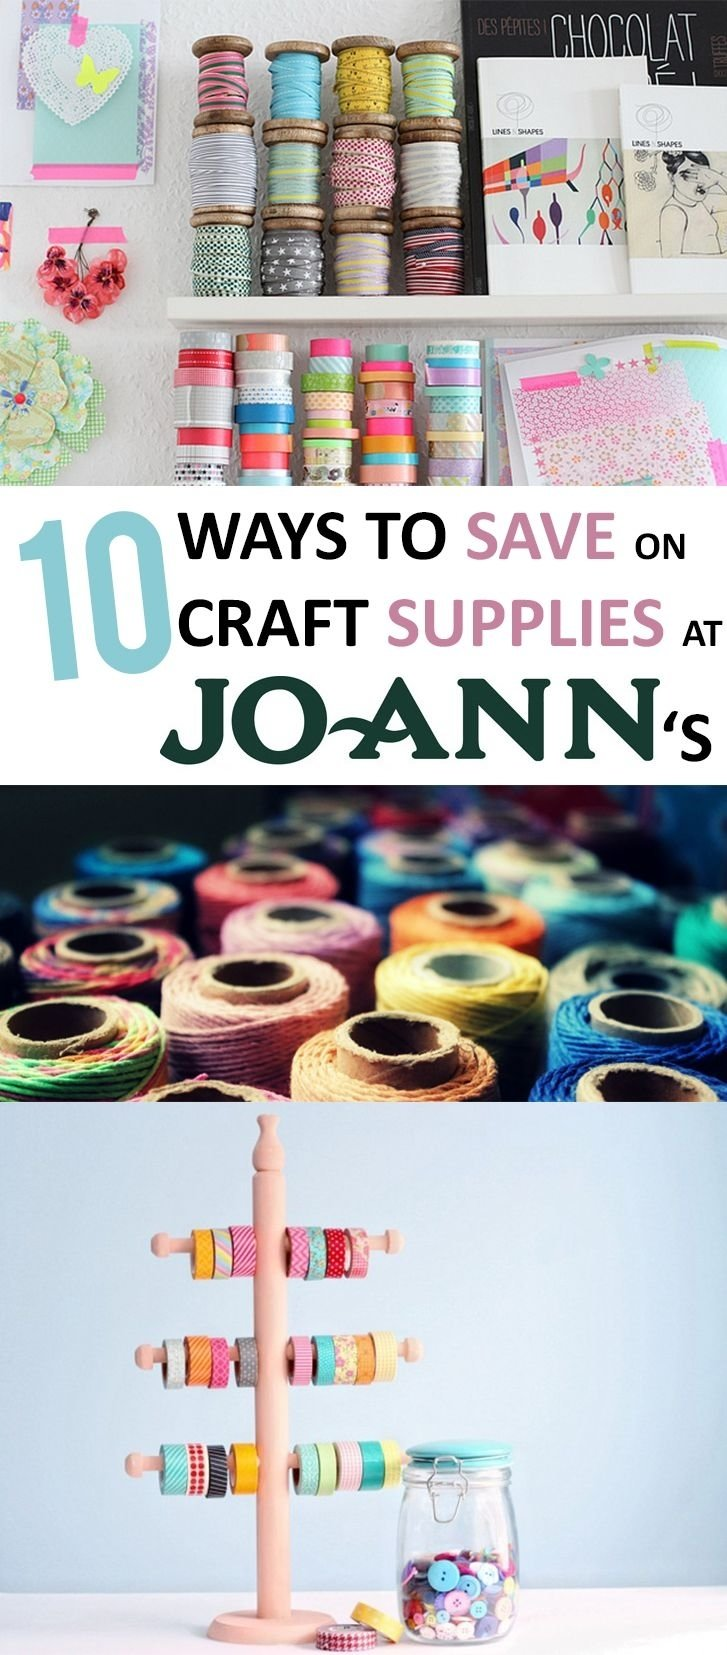 10 Great Money Saving Ideas For Home crafting craft hacks save money frugal crafting frugal crafting